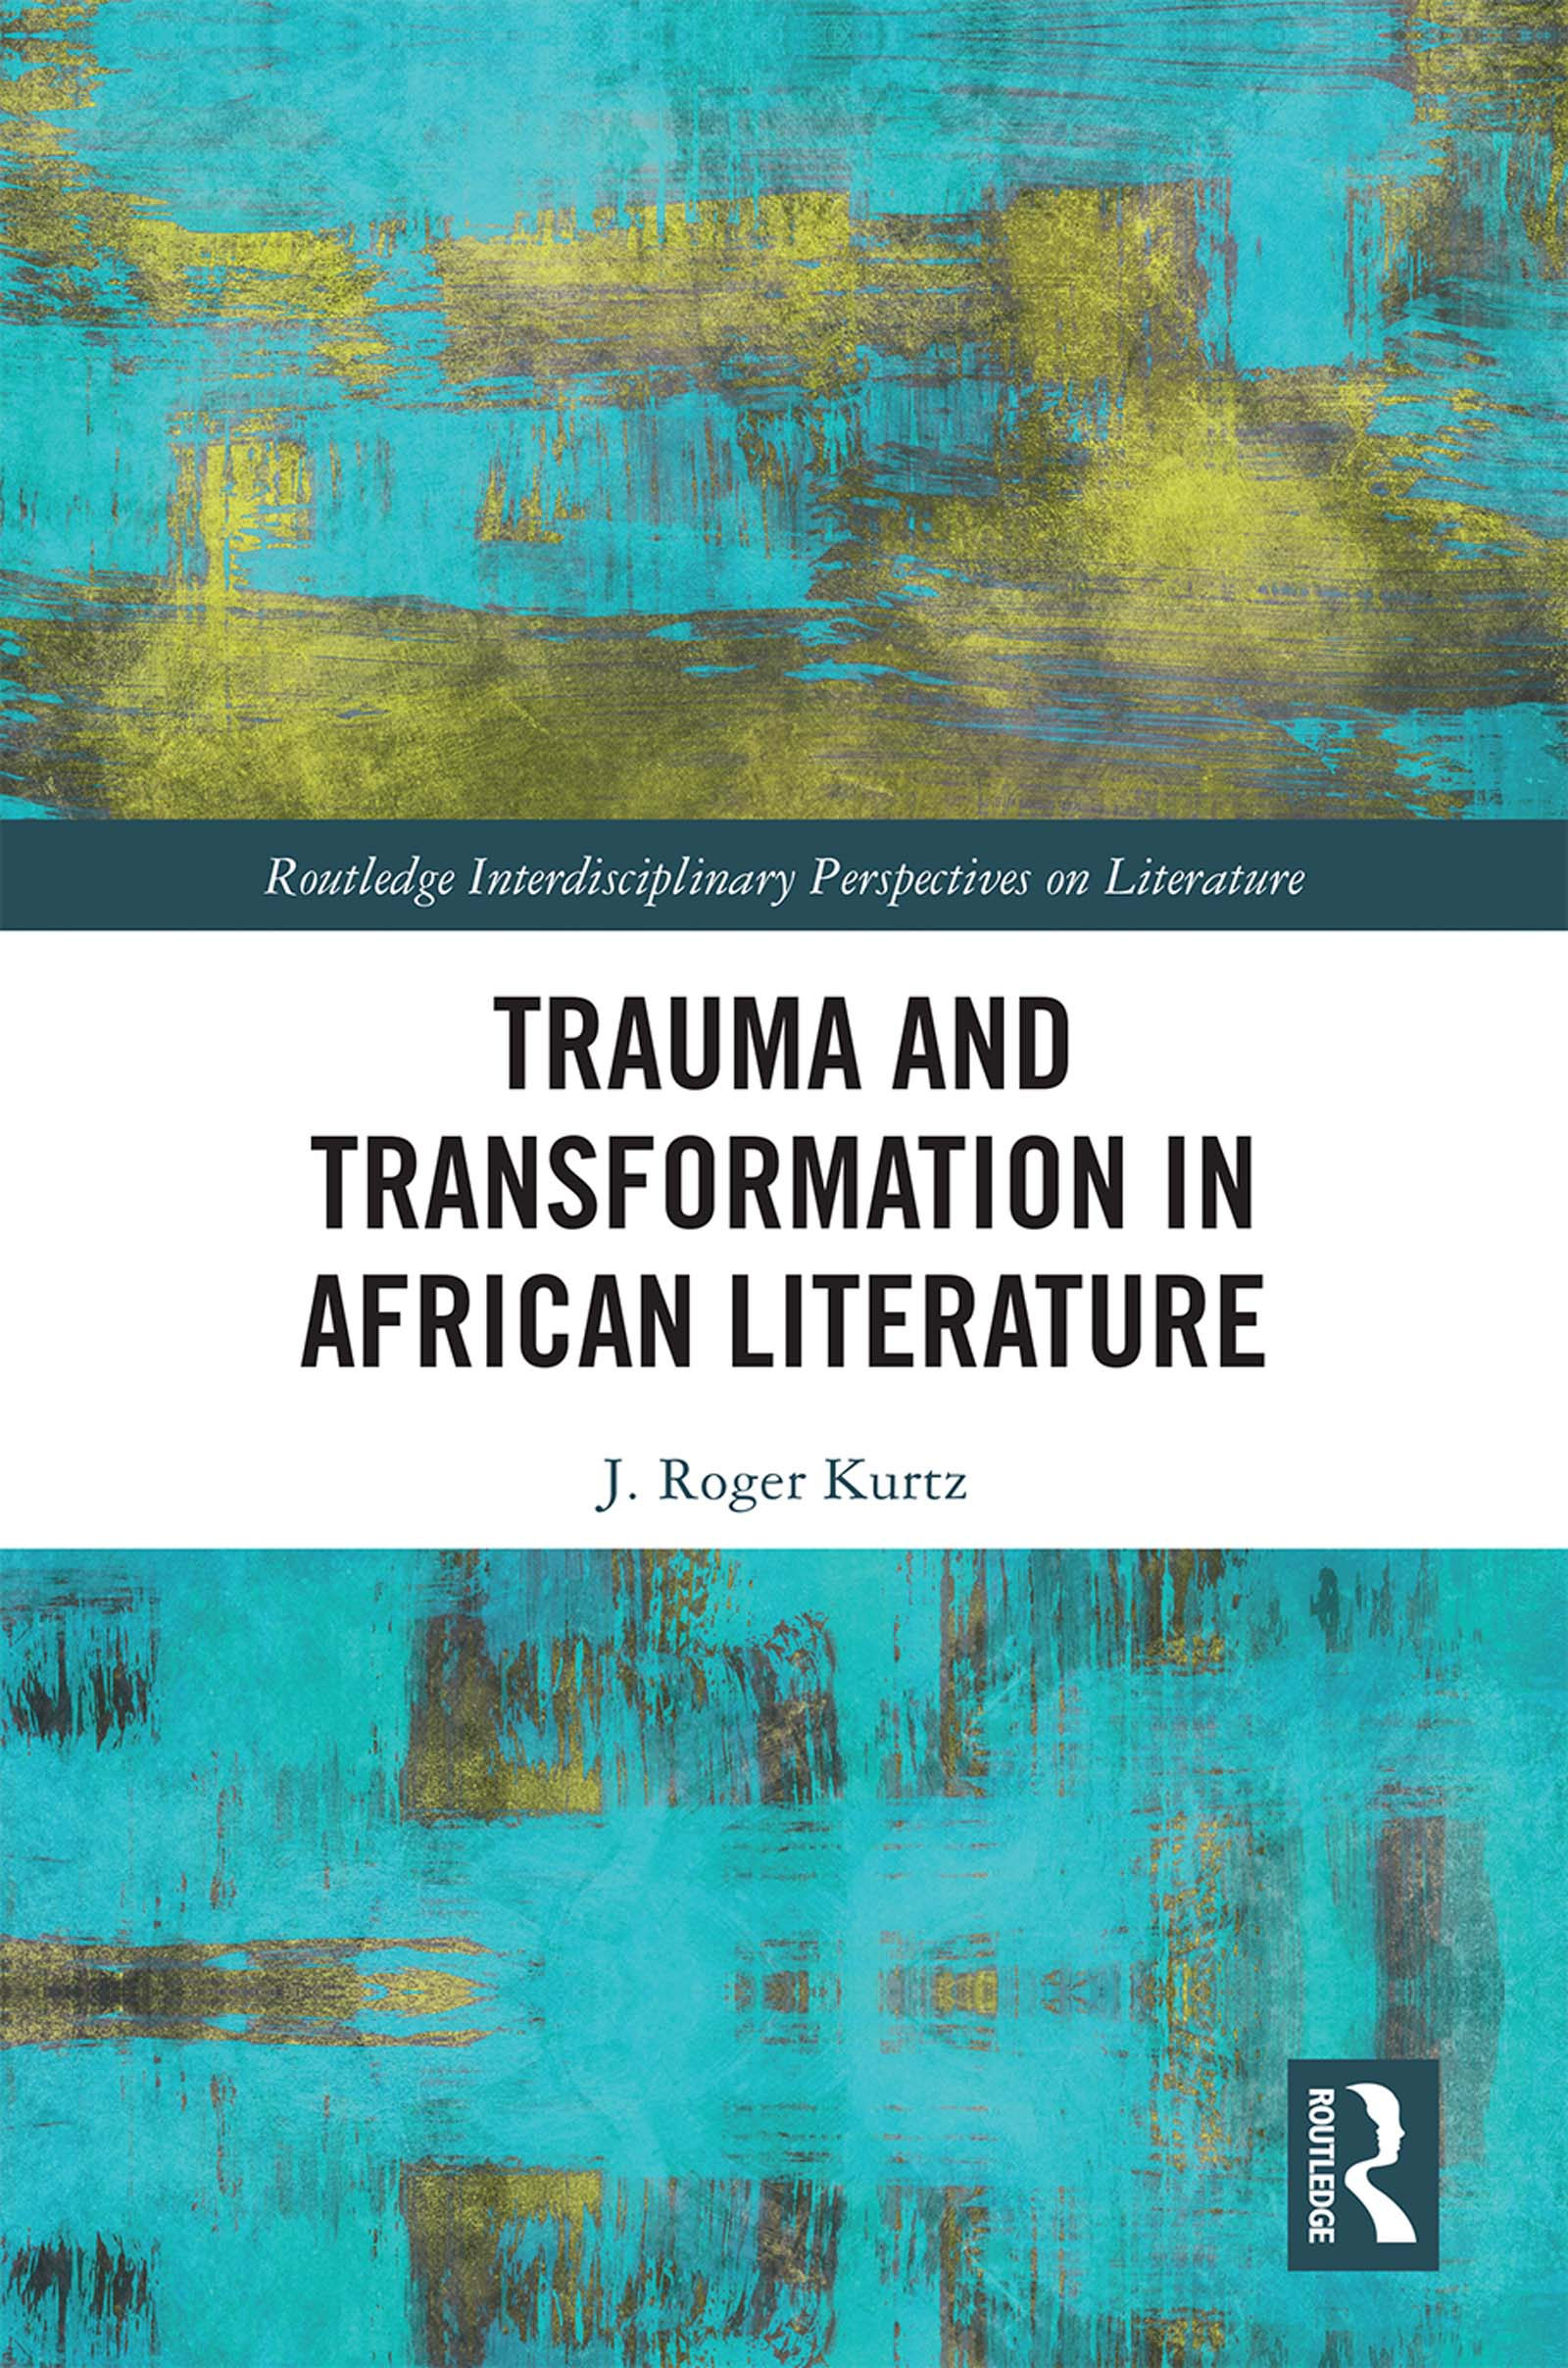 Trauma and Transformation in African Literature